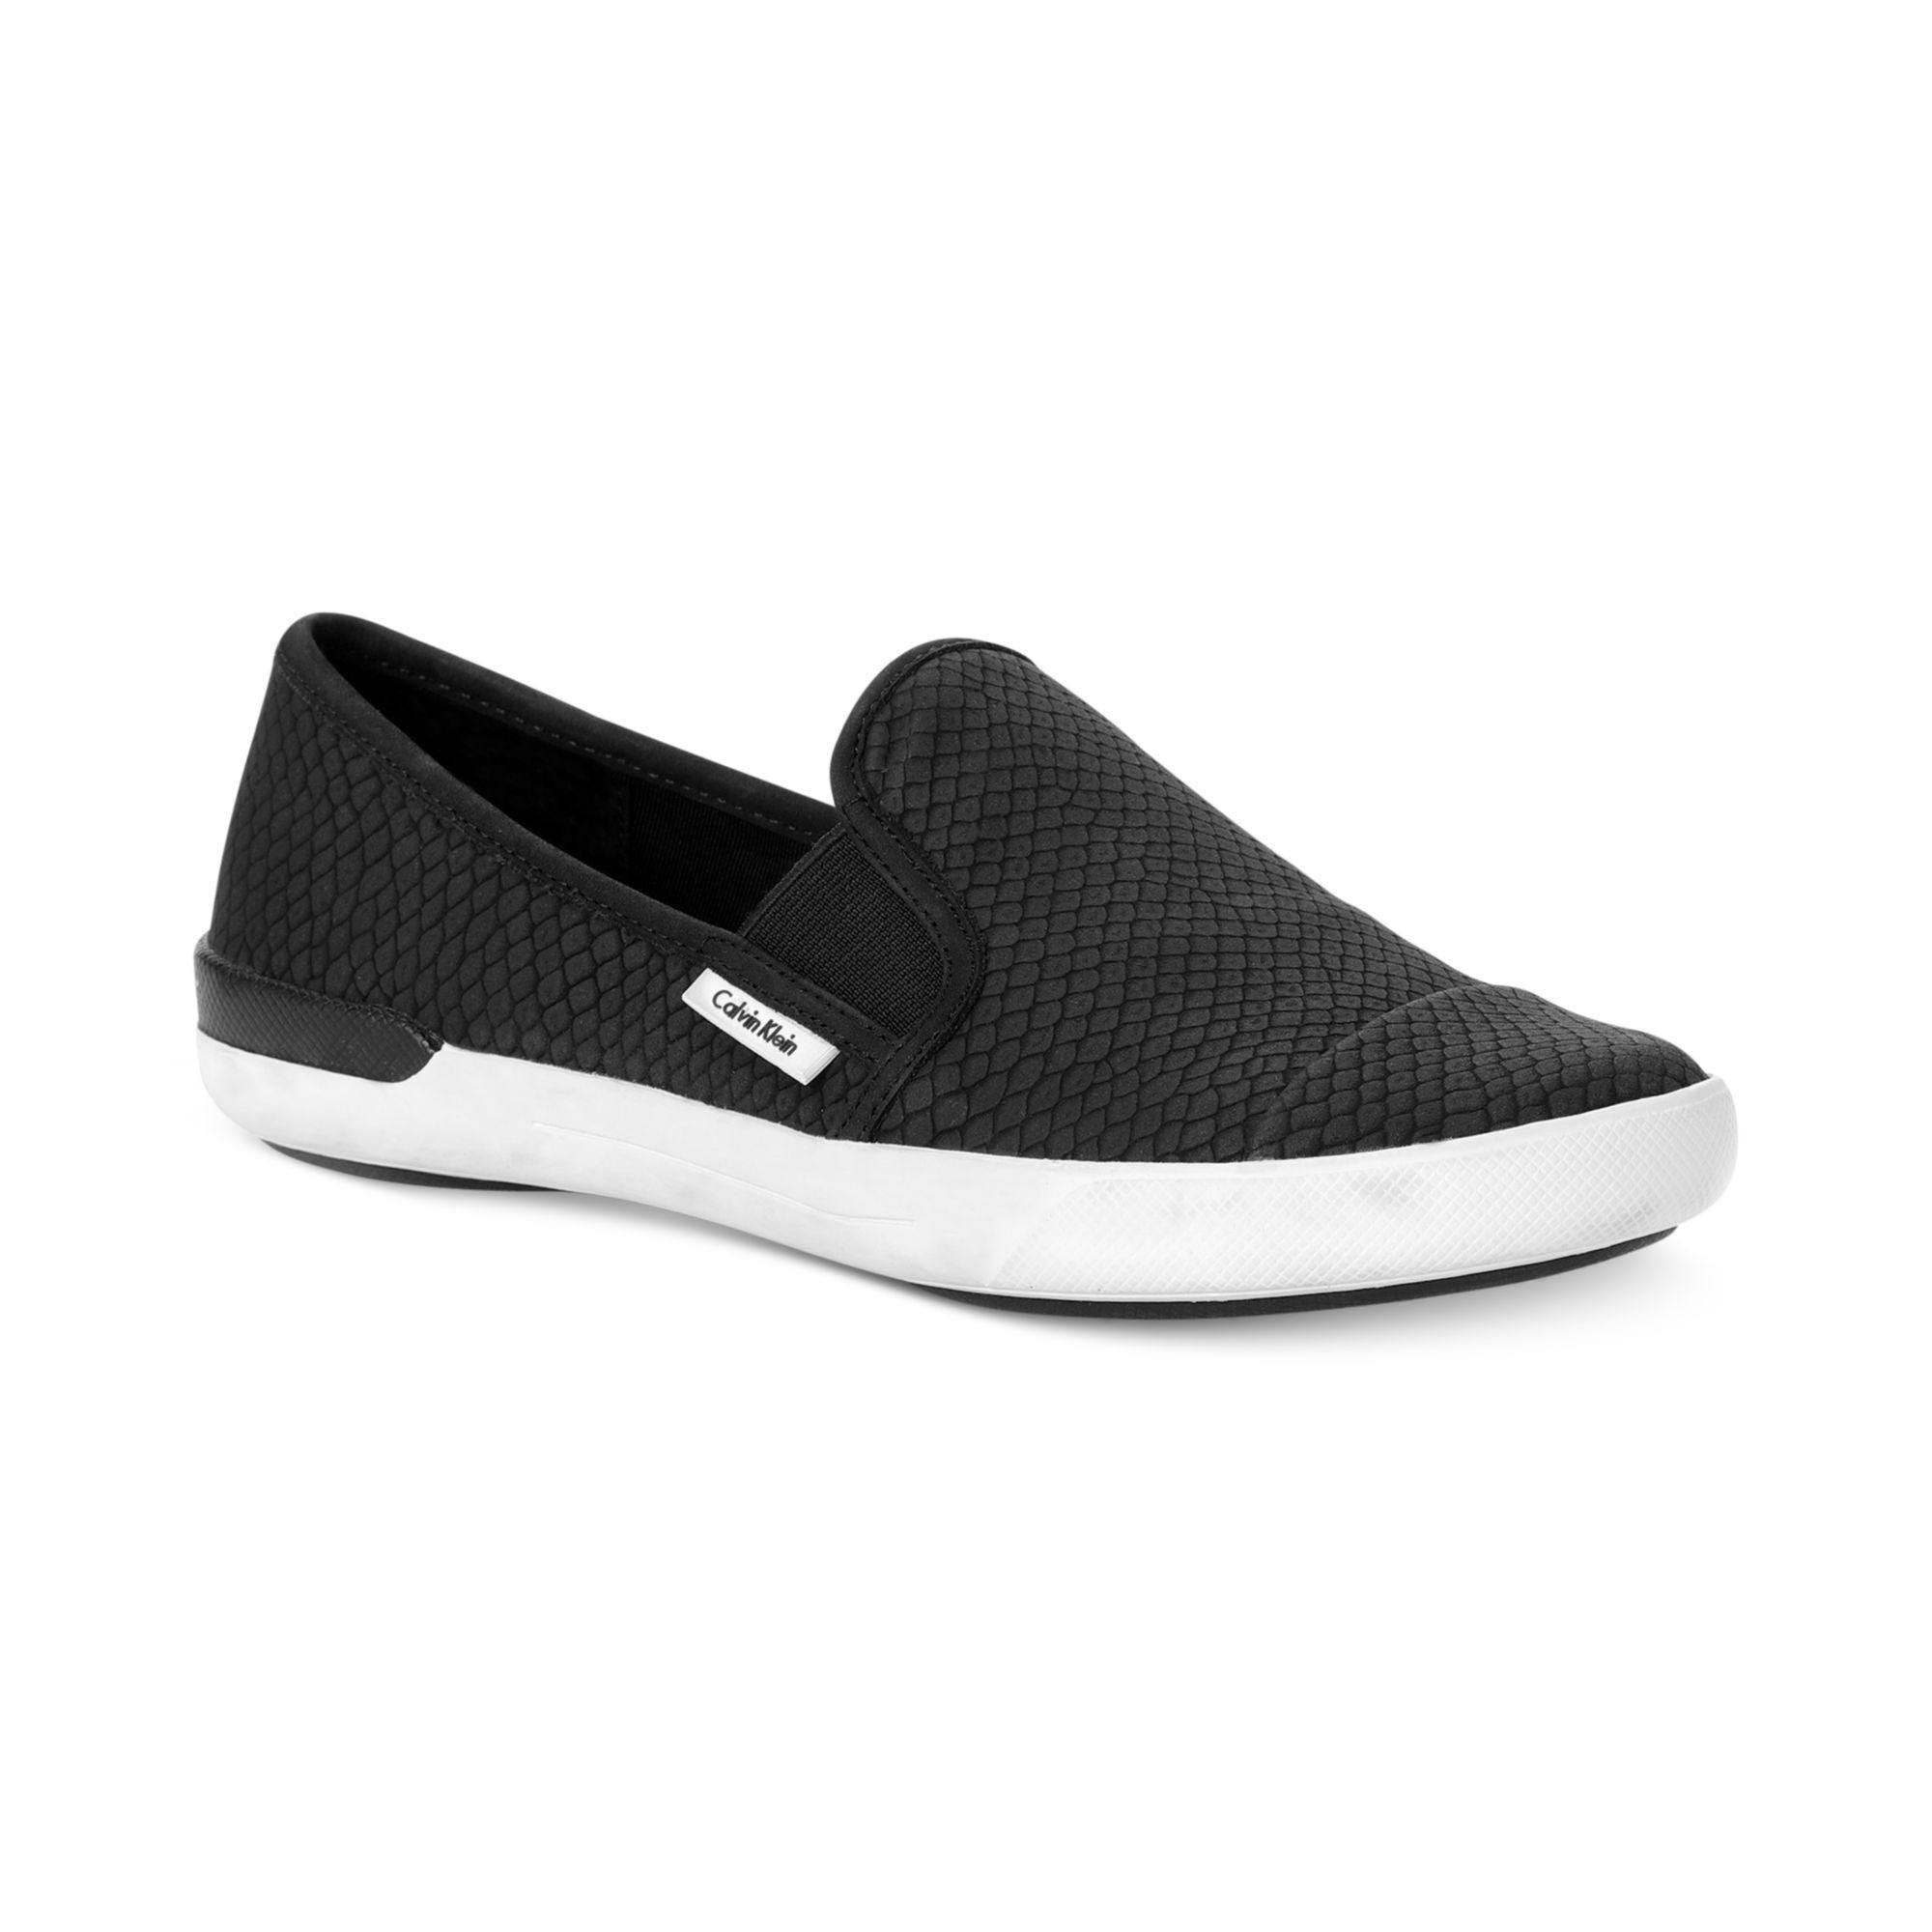 fe38a4bedd9e Calvin Klein Shoes